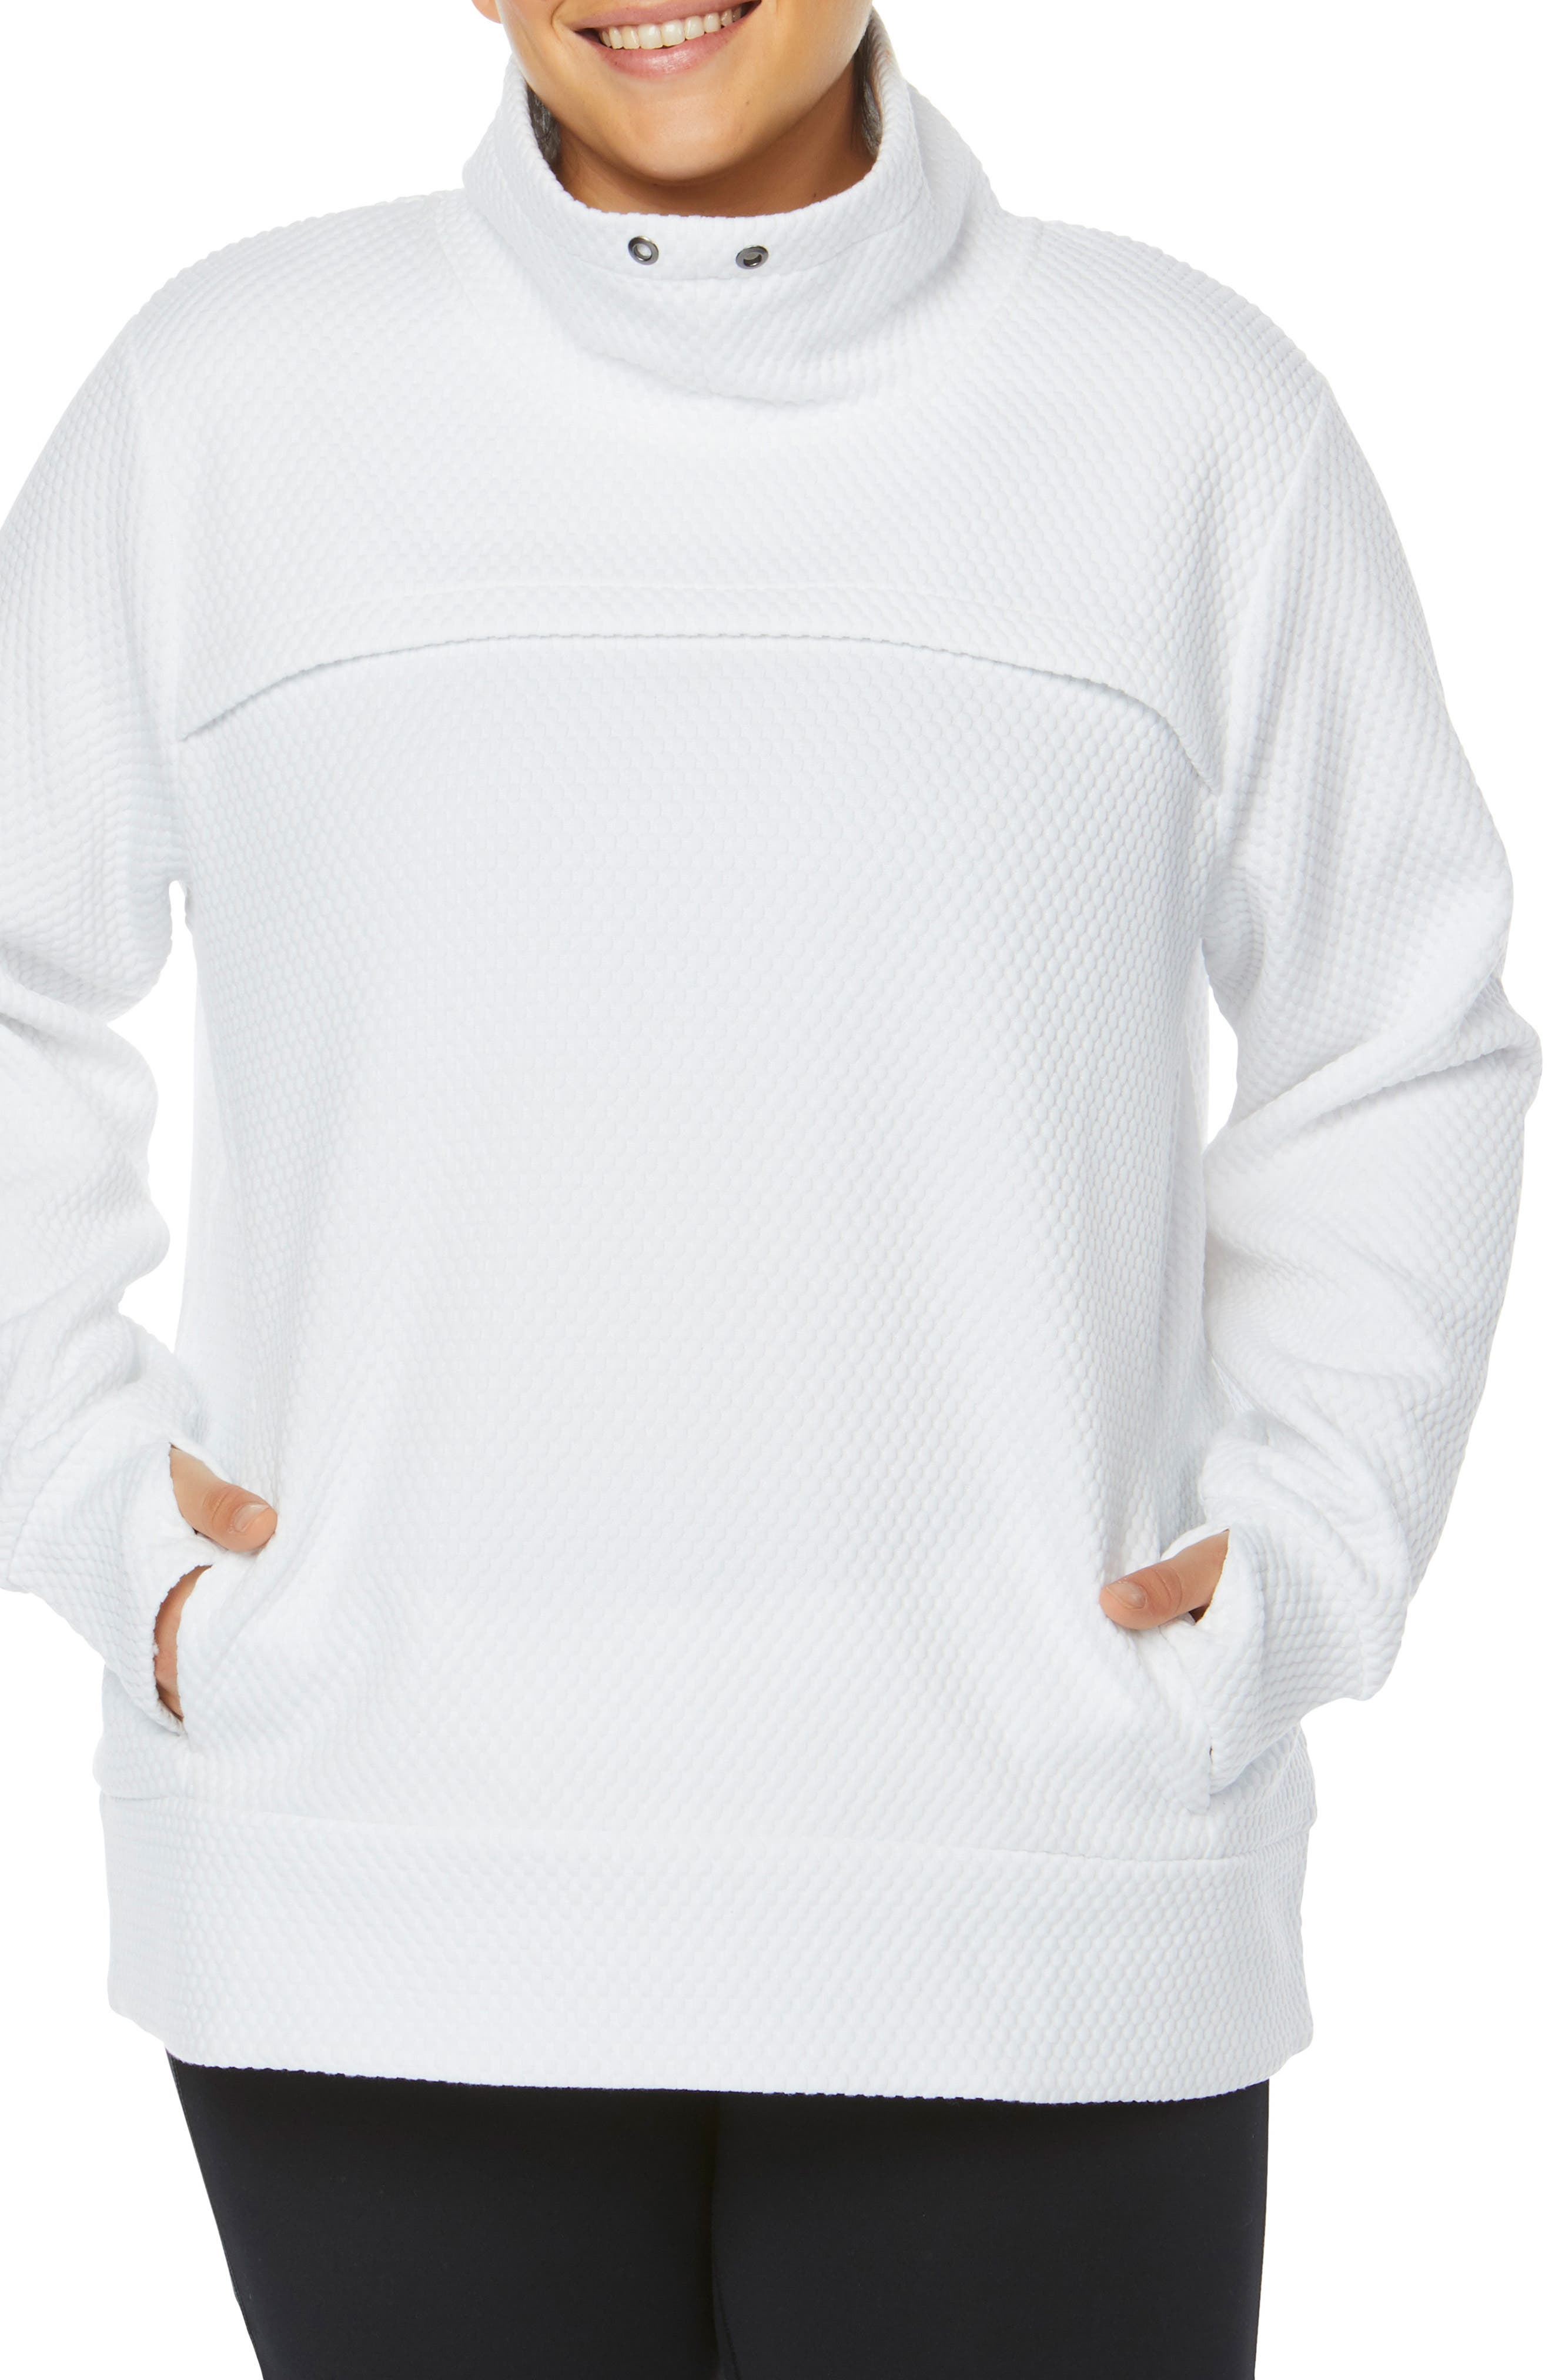 SHAPE ACTIVEWEAR, Overcast Funnel Neck Pullover, Main thumbnail 1, color, 100